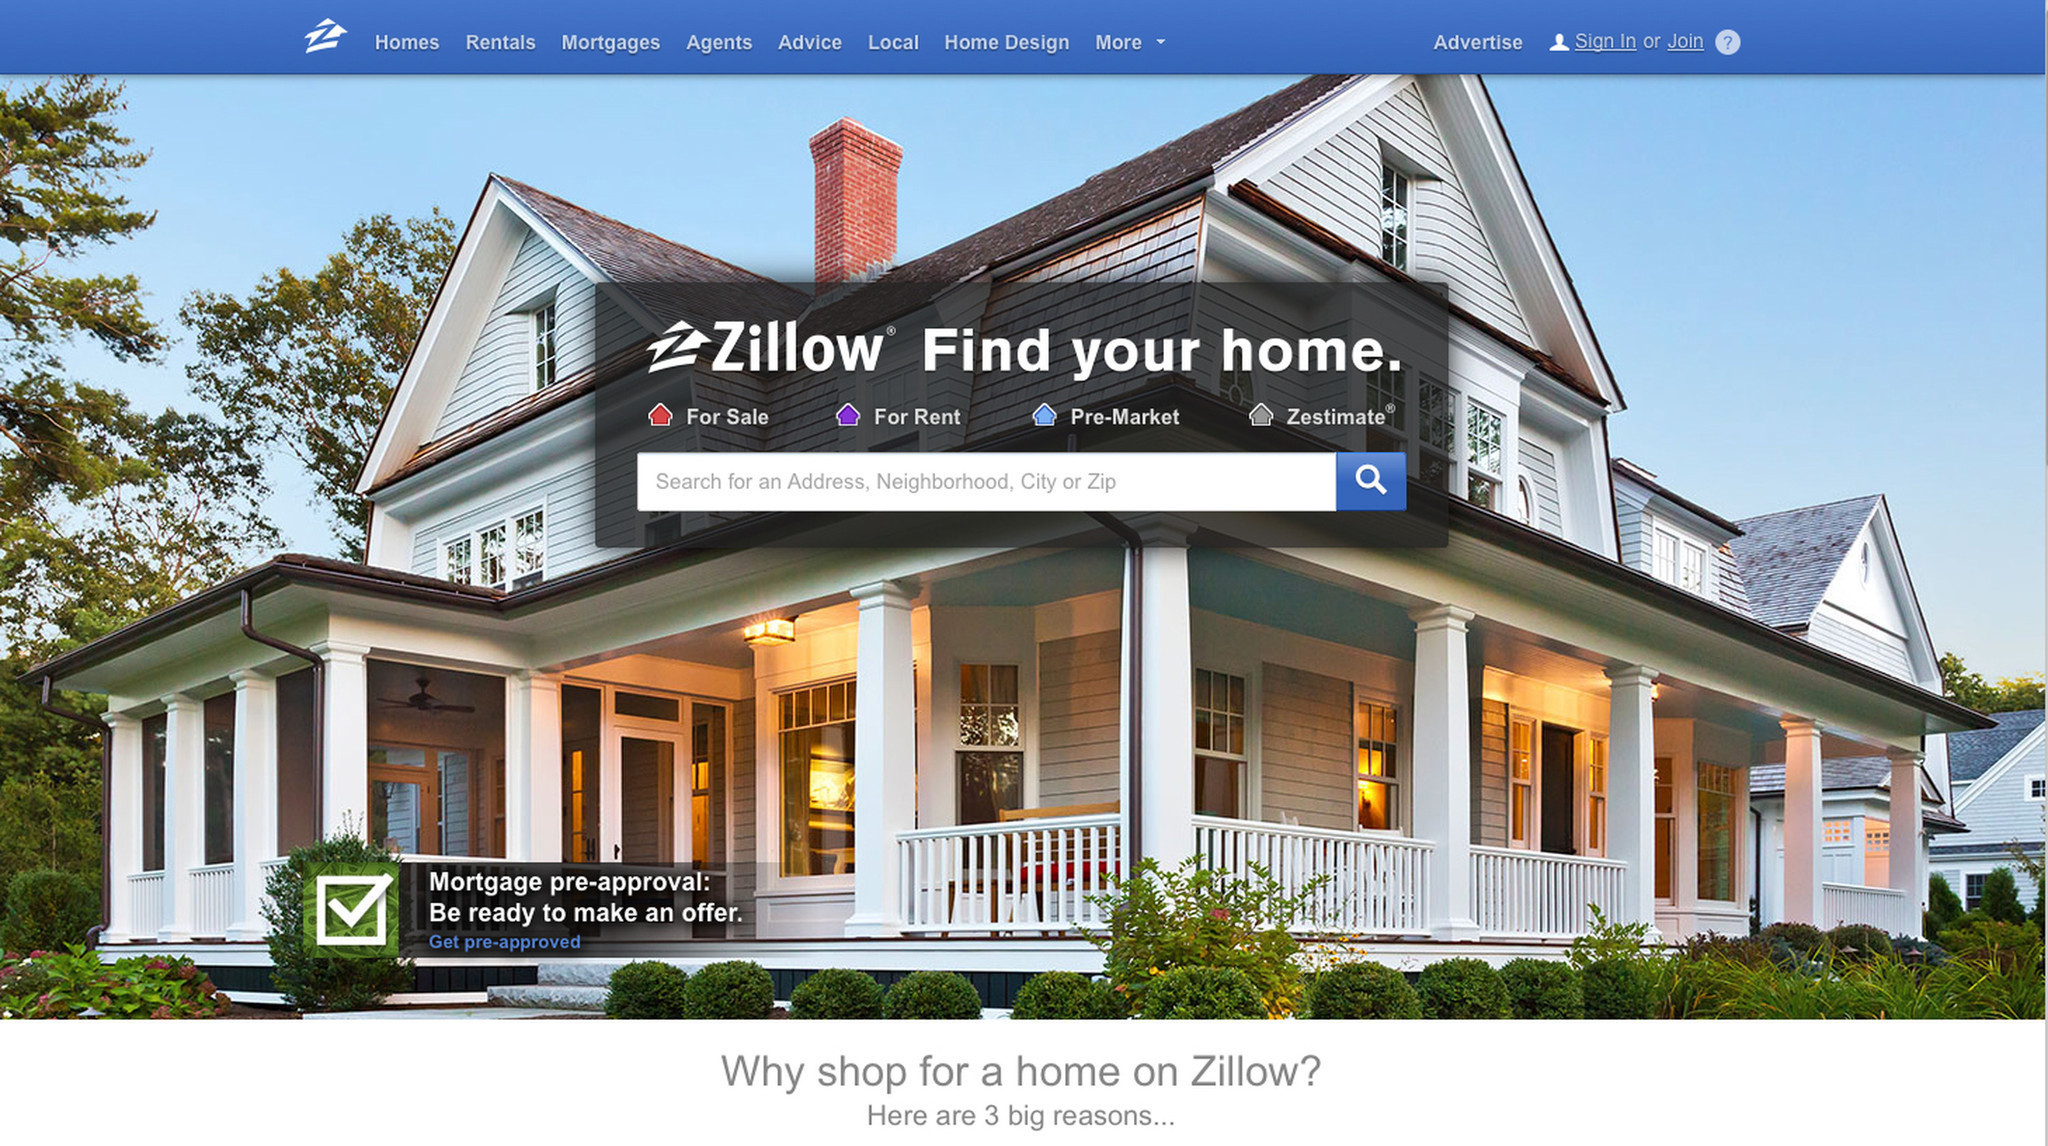 VHT sues Zillow over use of real estate photos on website - Chicago Zillow Mobile Homes For Rent Html on berkey ohio homes for rent, local mobile homes for rent, hotpads homes for rent,